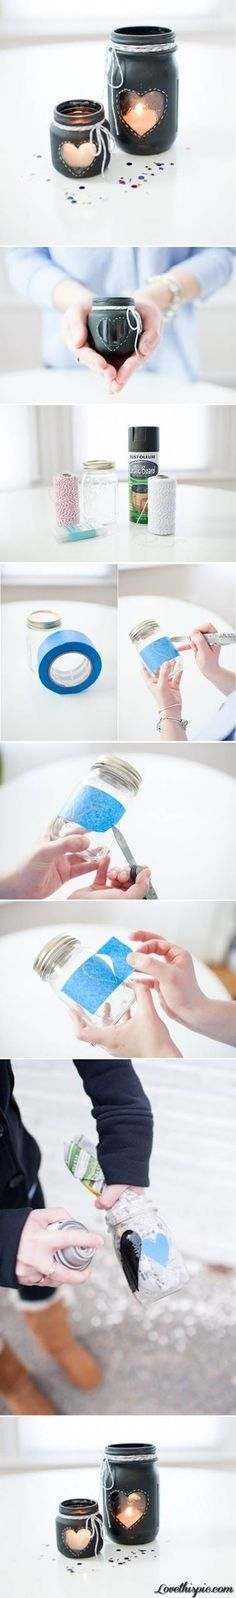 #DIY Glass Jar Candlestick - Cool And Easy. Do it NOW. For More DIY Projects Click On Image. #Candlesticks #DIY